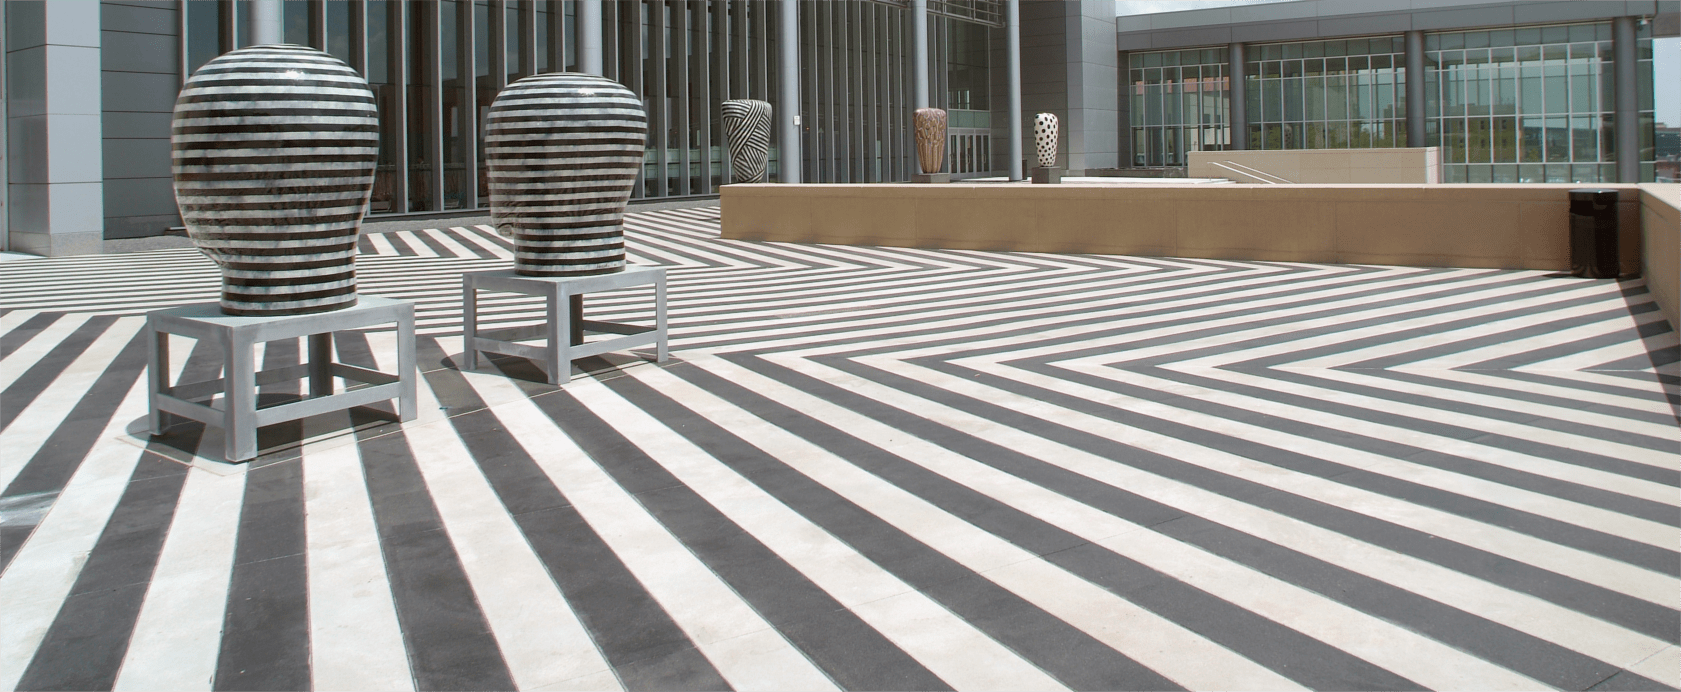 Bomanite Exposed Aggregate Systems, Sandscape Texture with Bomanite Con-Color, Bartle Hall Ballroom Water Plaza in Kansas City by Musselman & Hall Contractors